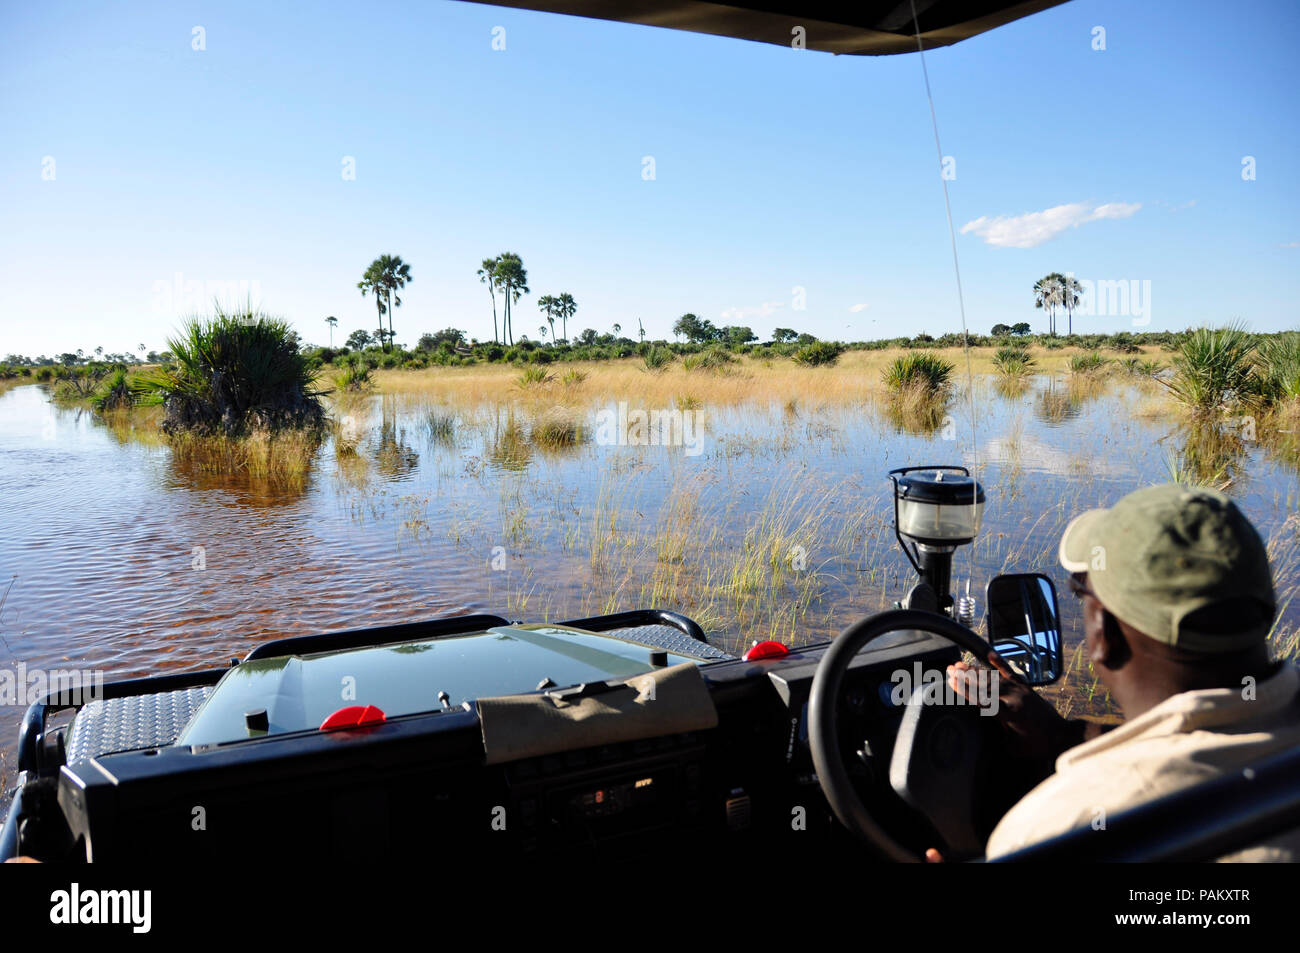 Adventure & Adrenalin pur: Okavango-Delta swamps crossing with a landrover, which faced the biggest floods since 46 years. - Stock Image